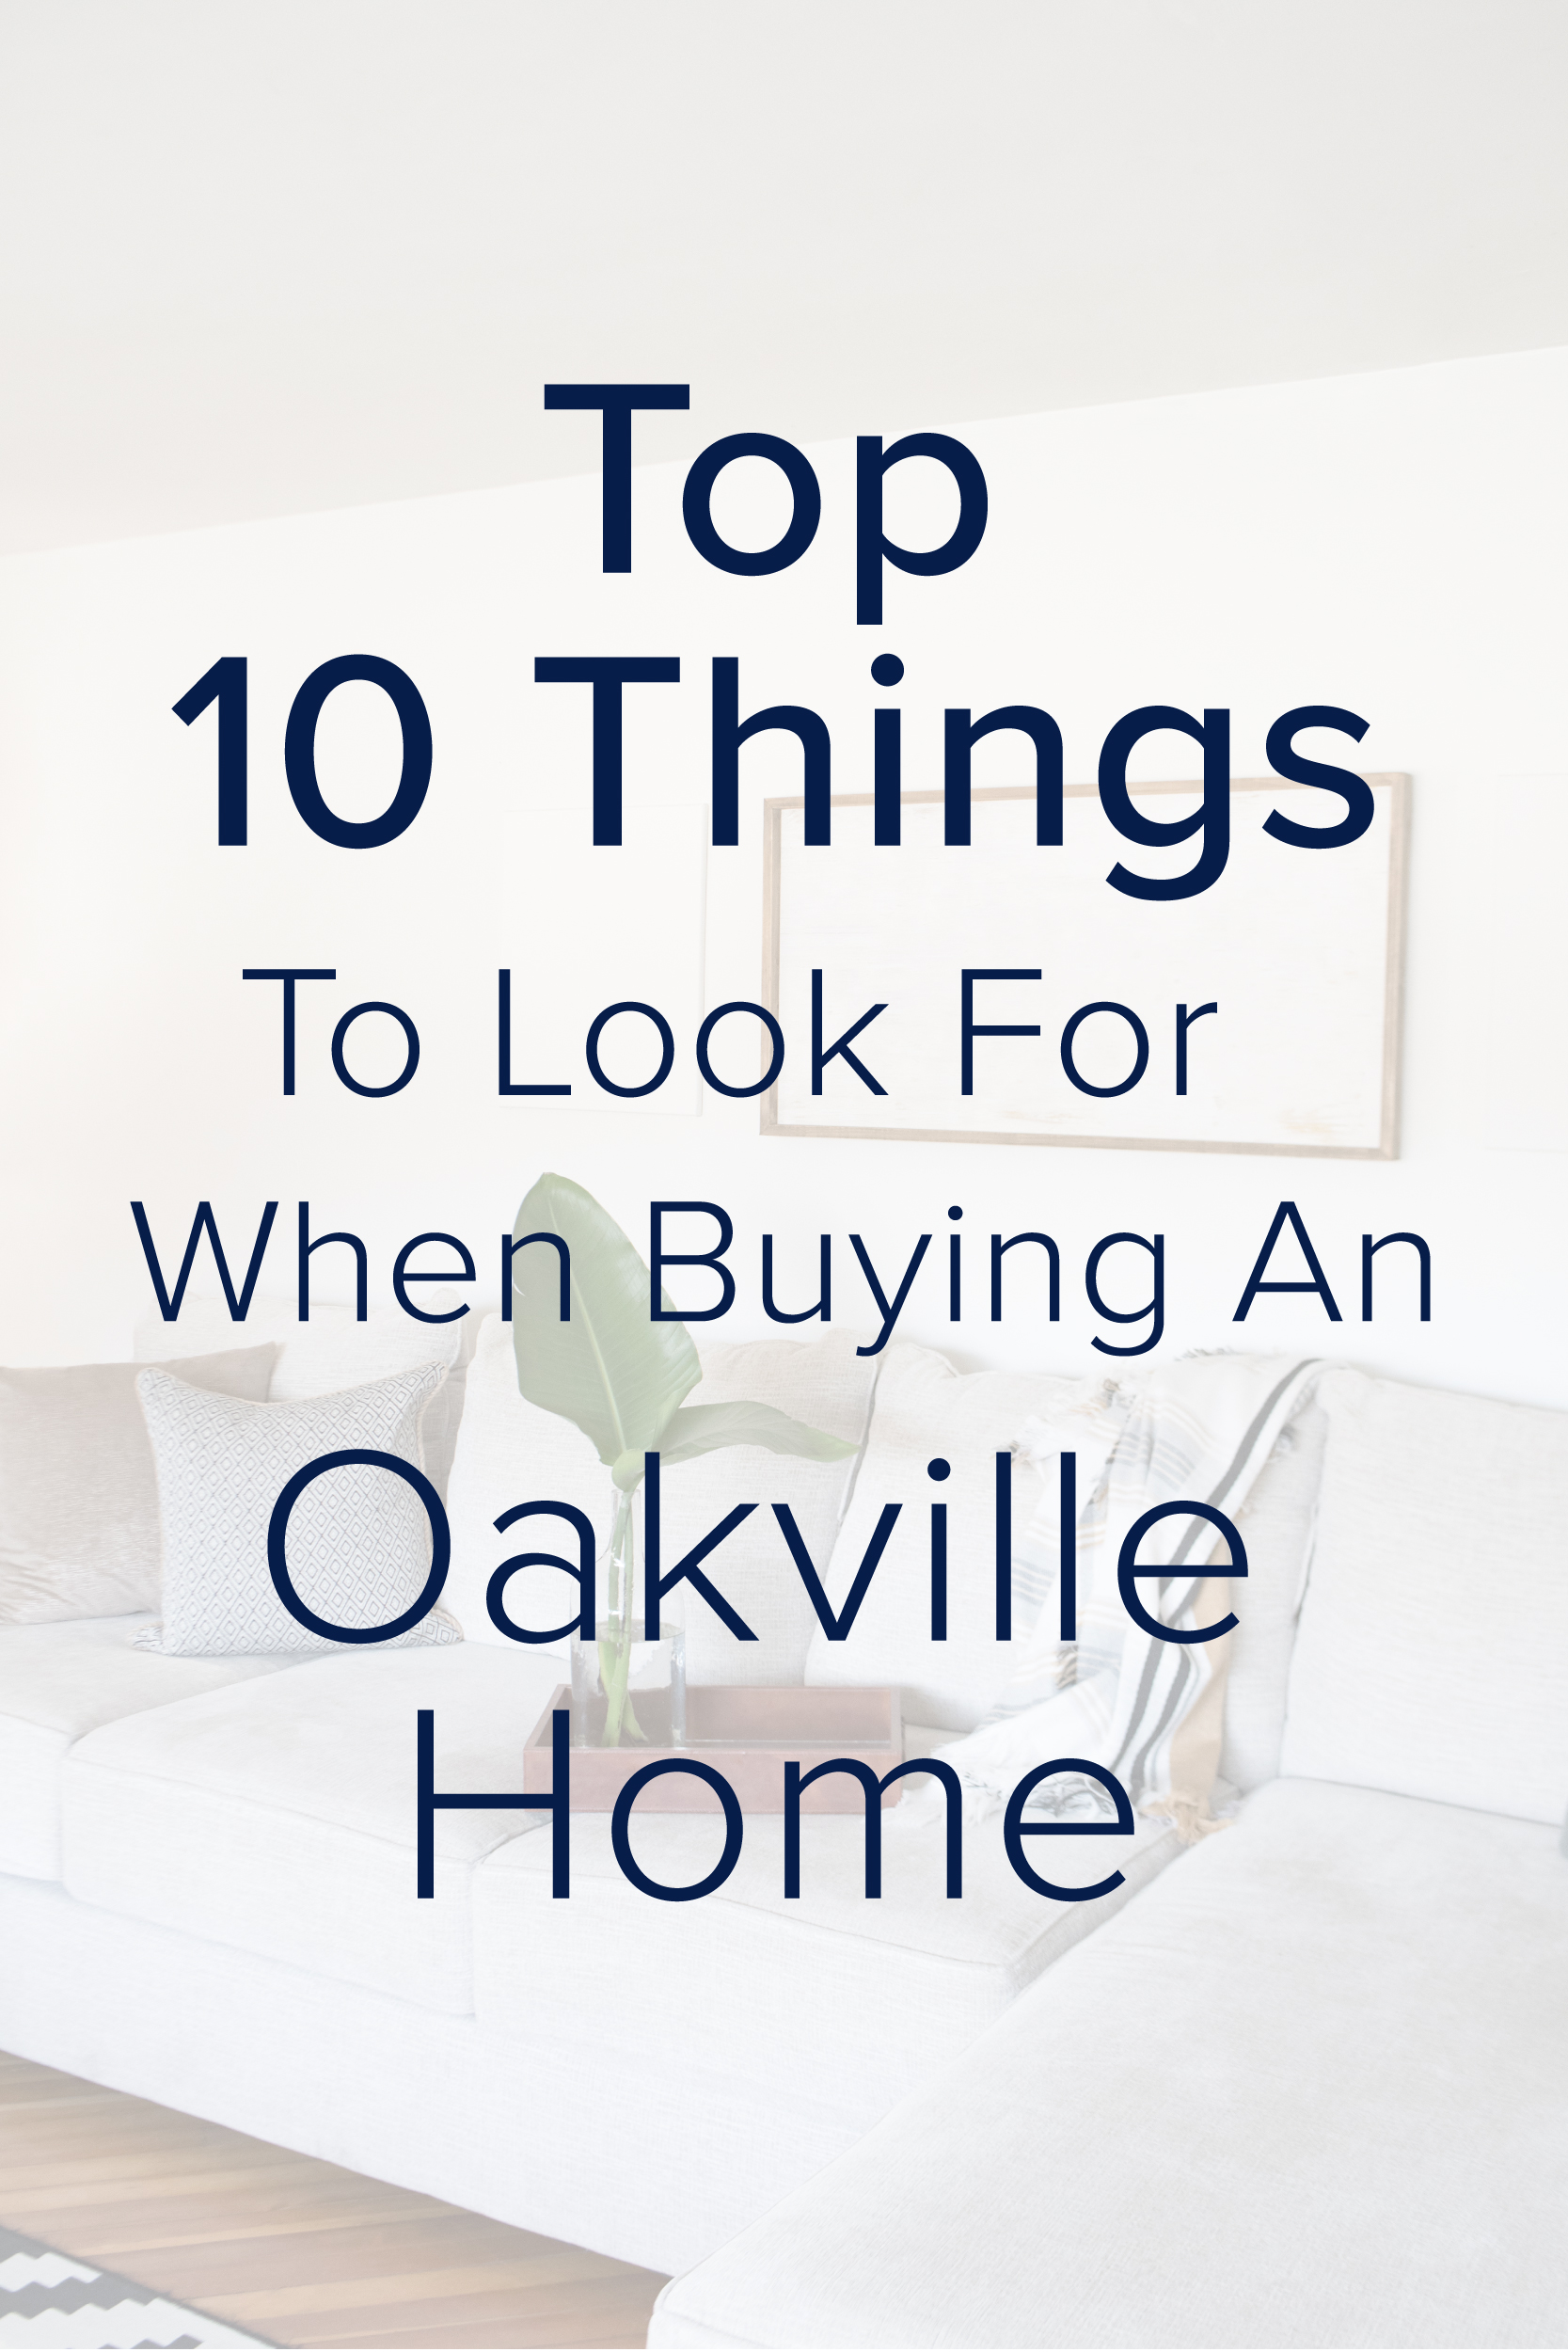 top-ten-things-to-look-for-when-buying-an-oakville-home.jpg